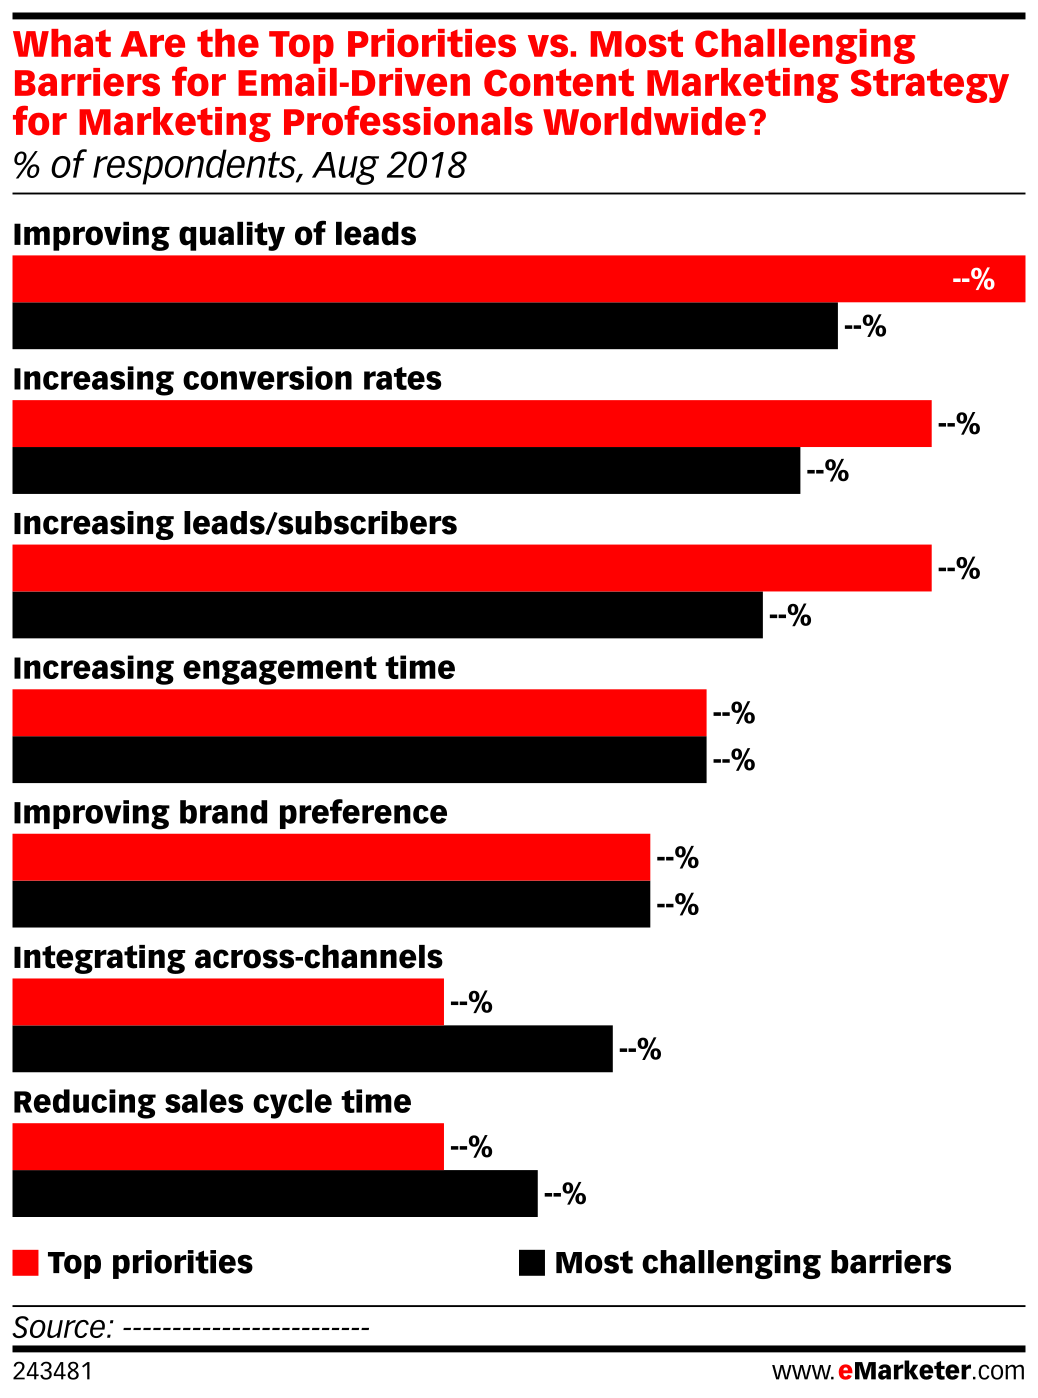 What Are the Top Priorities vs. Most Challenging Barriers for Email-Driven Content Marketing Strategy for Marketing Professionals Worldwide? (% of respondents, Aug 2018)